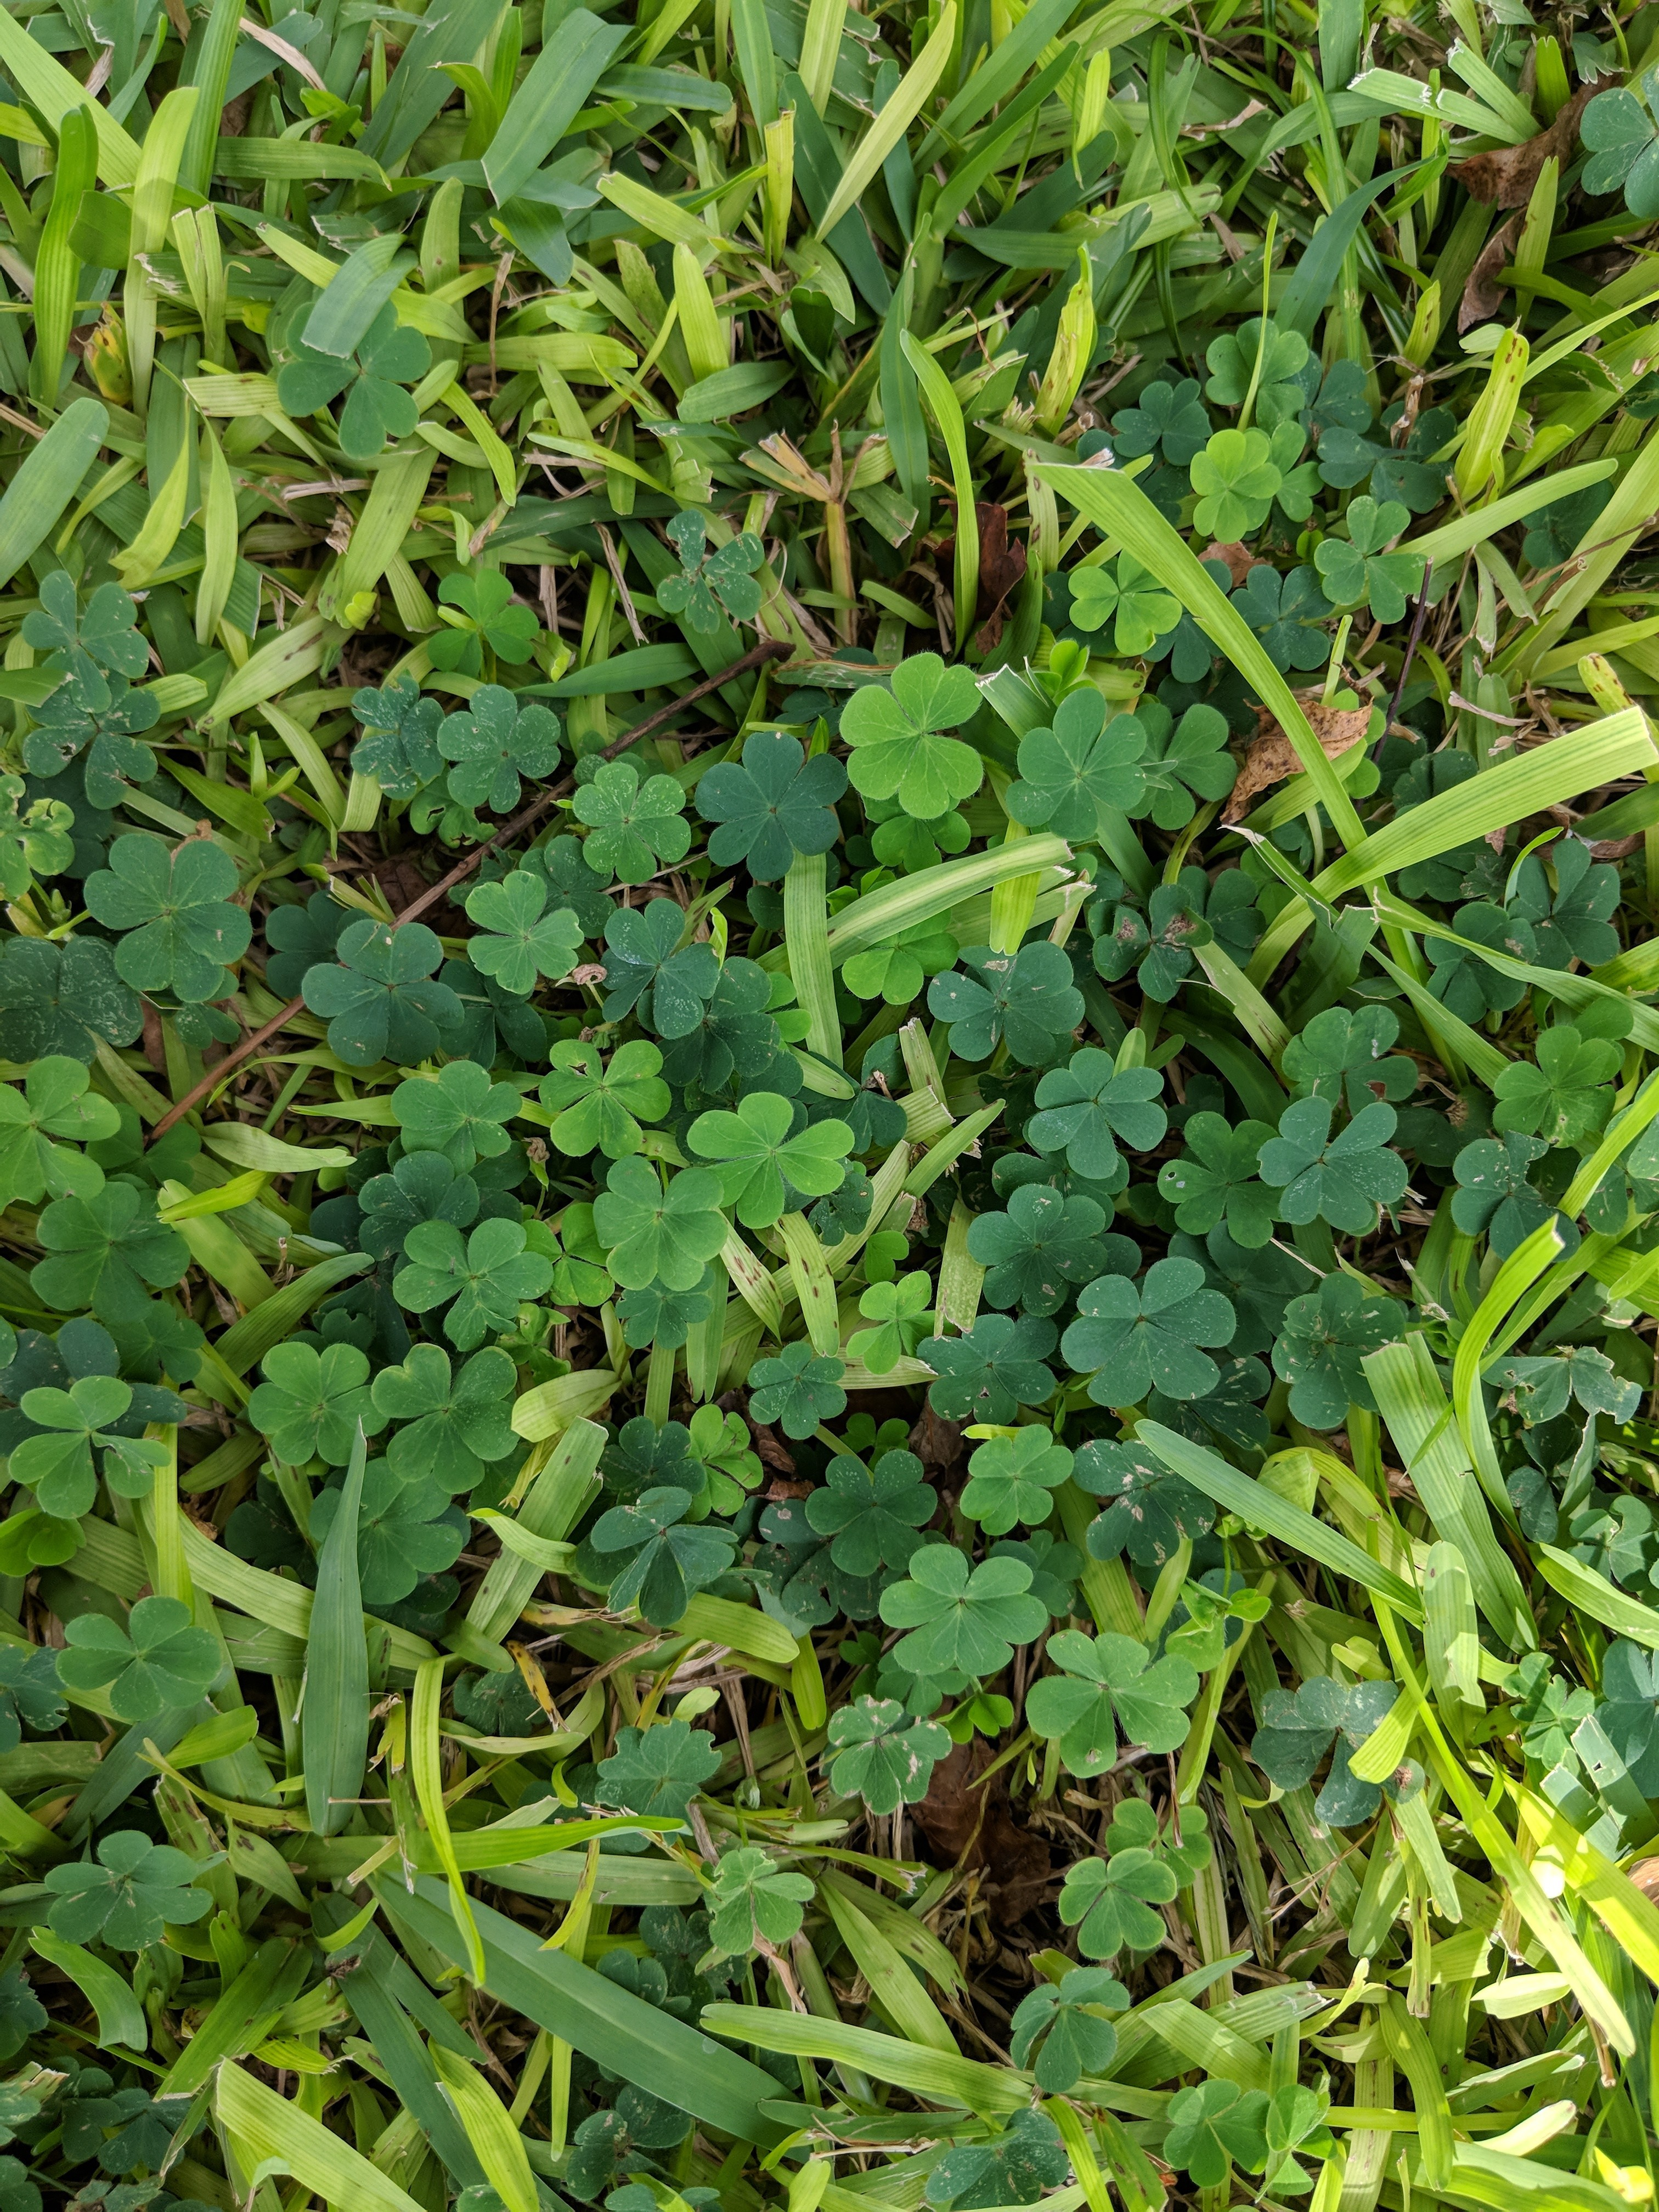 Weed Identification And Questions About Weed Control Lawn